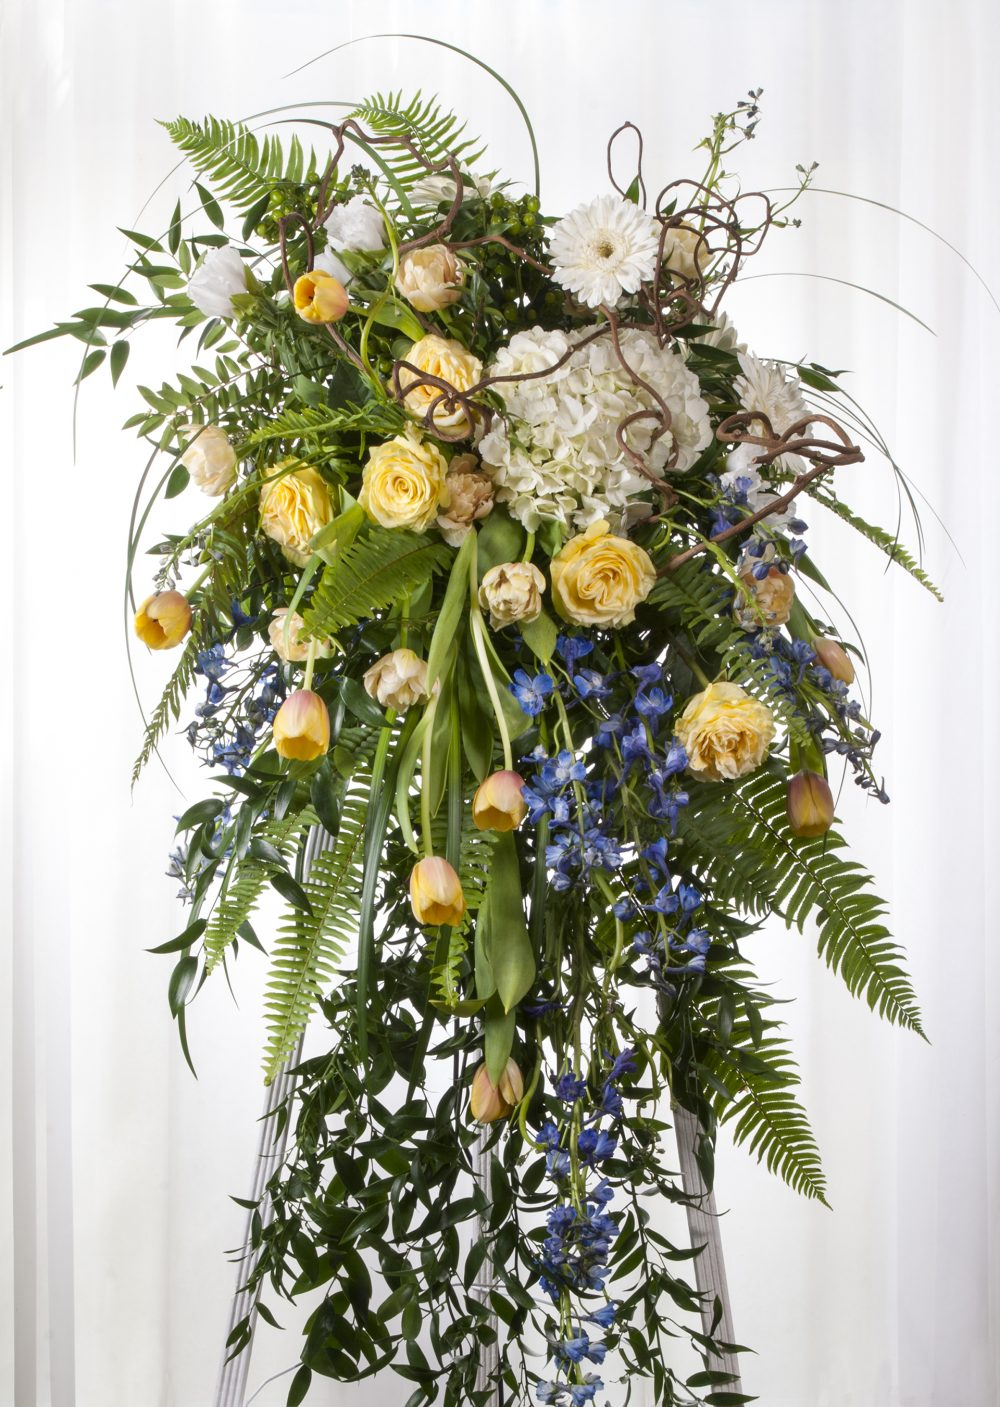 Unique beautiful funeral flower arrangement in an elegant standing spray, mounted on an easel.